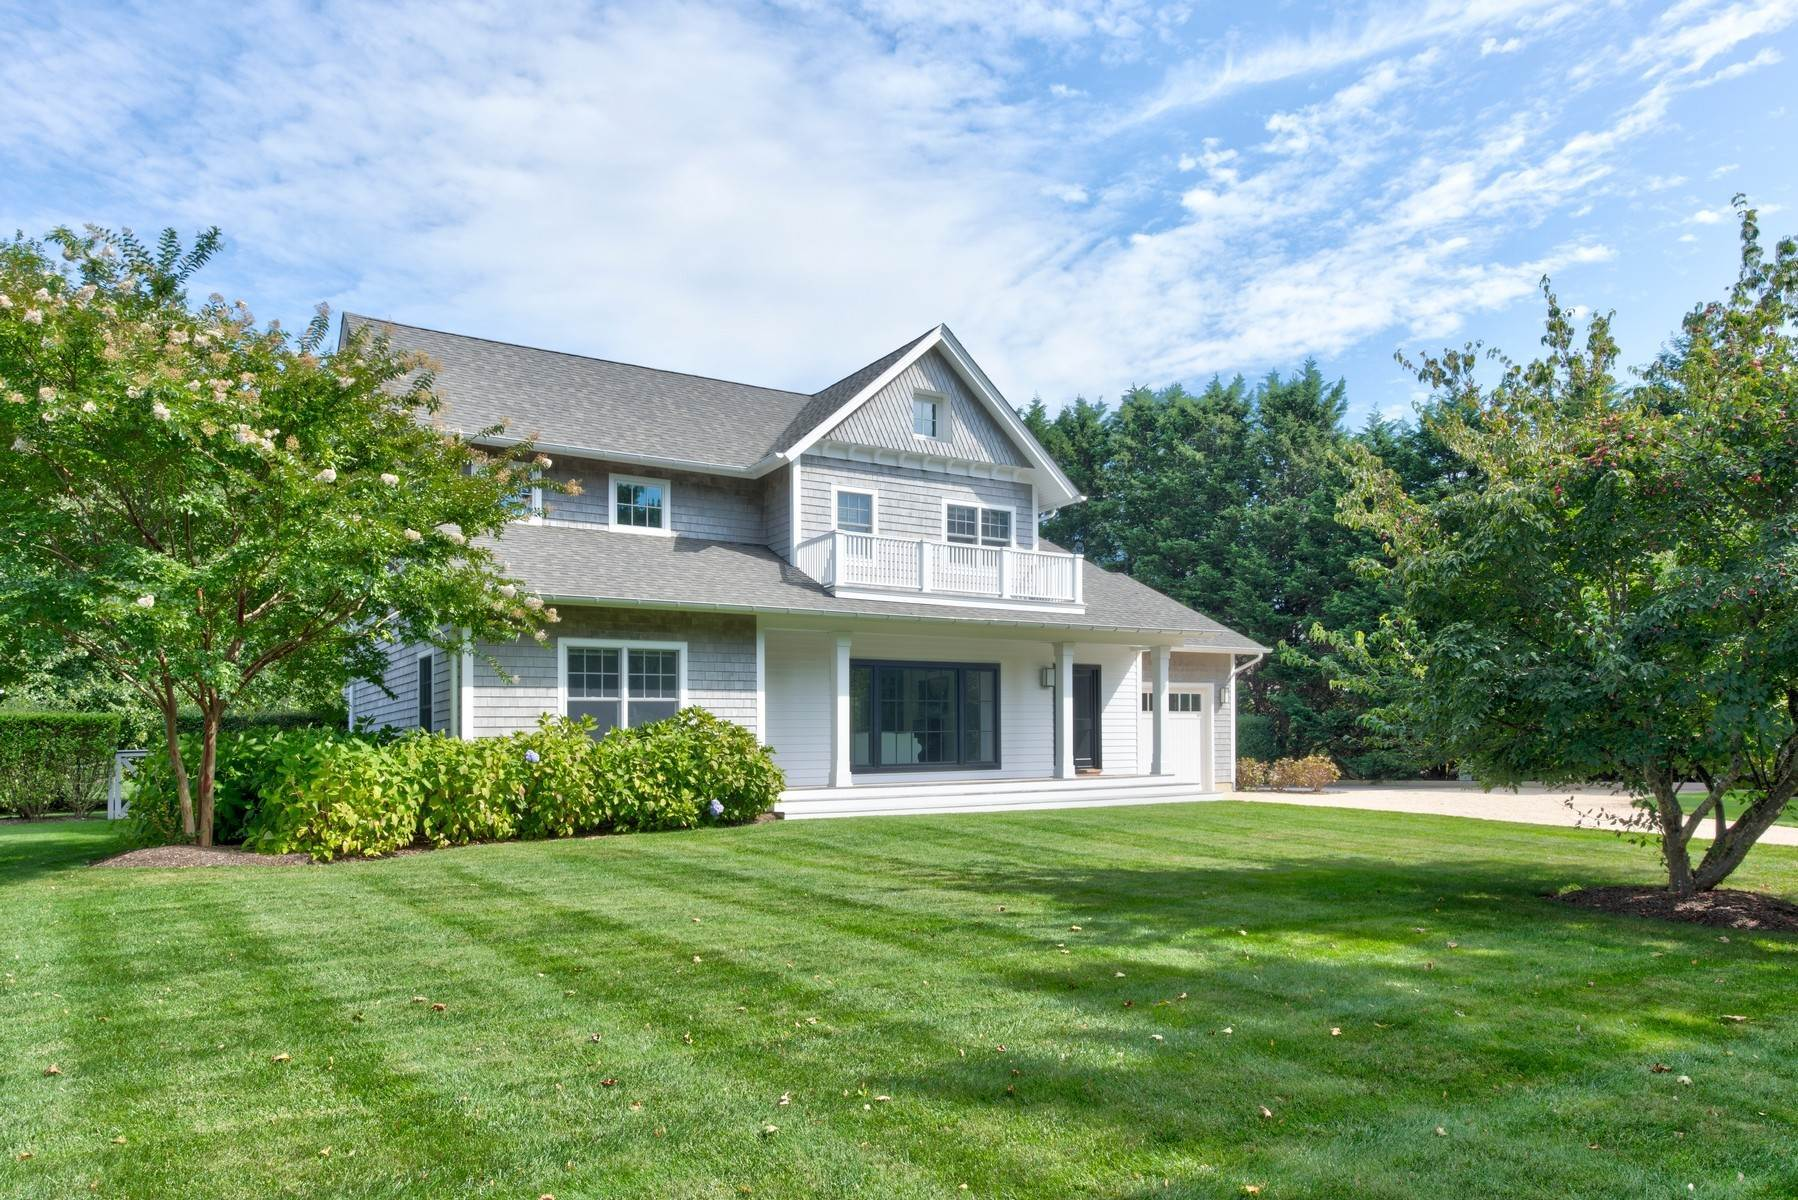 Single Family Home at Modern Home In Heart Of Bridgehampton Bridgehampton, NY 11932